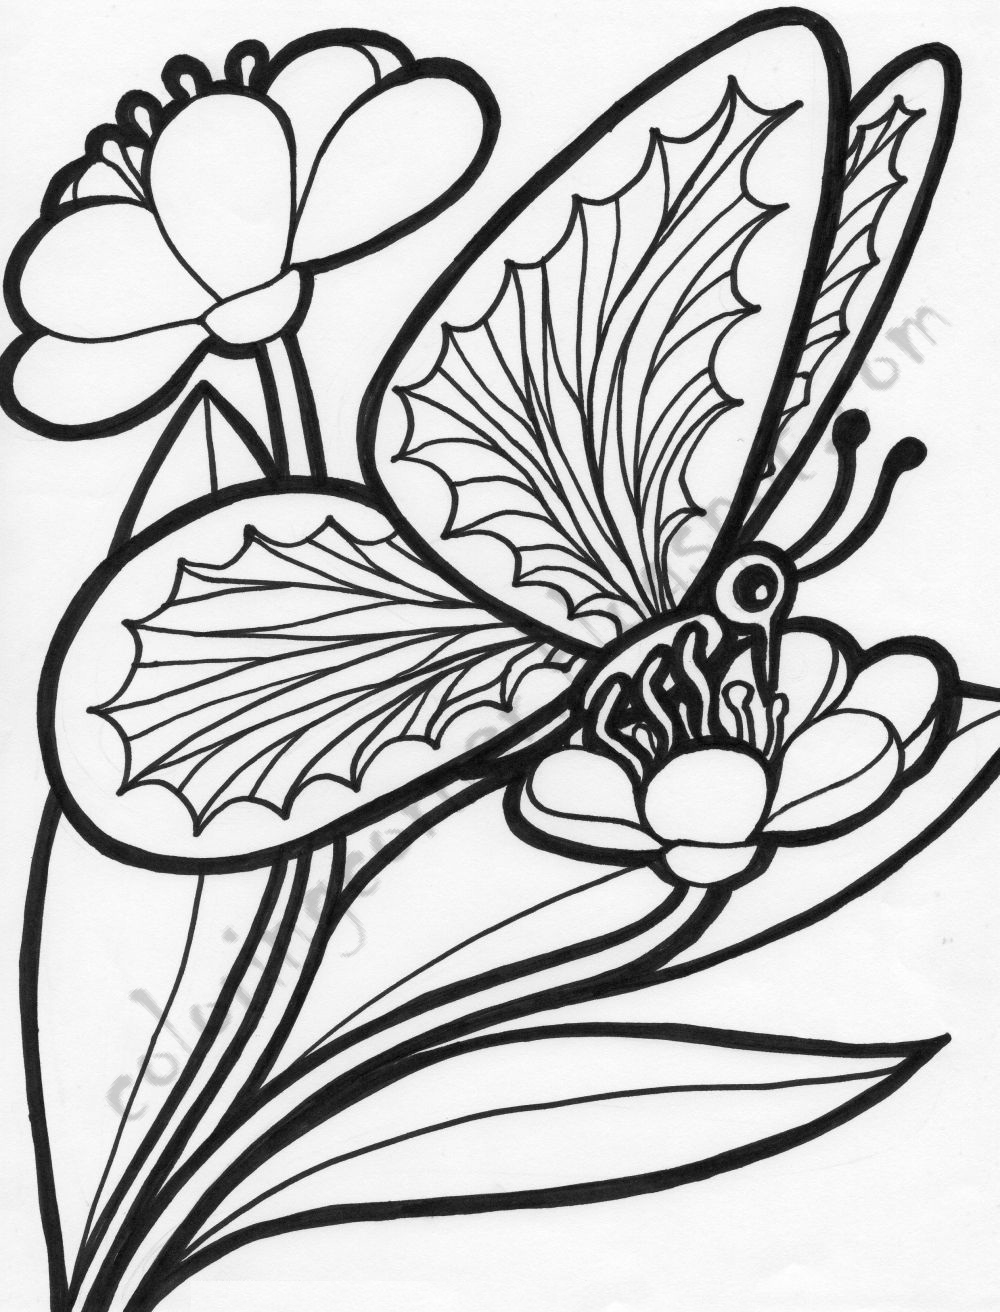 butterfly coloring sheet printable butterfly coloring pages and other free printable coloring printable sheet butterfly coloring